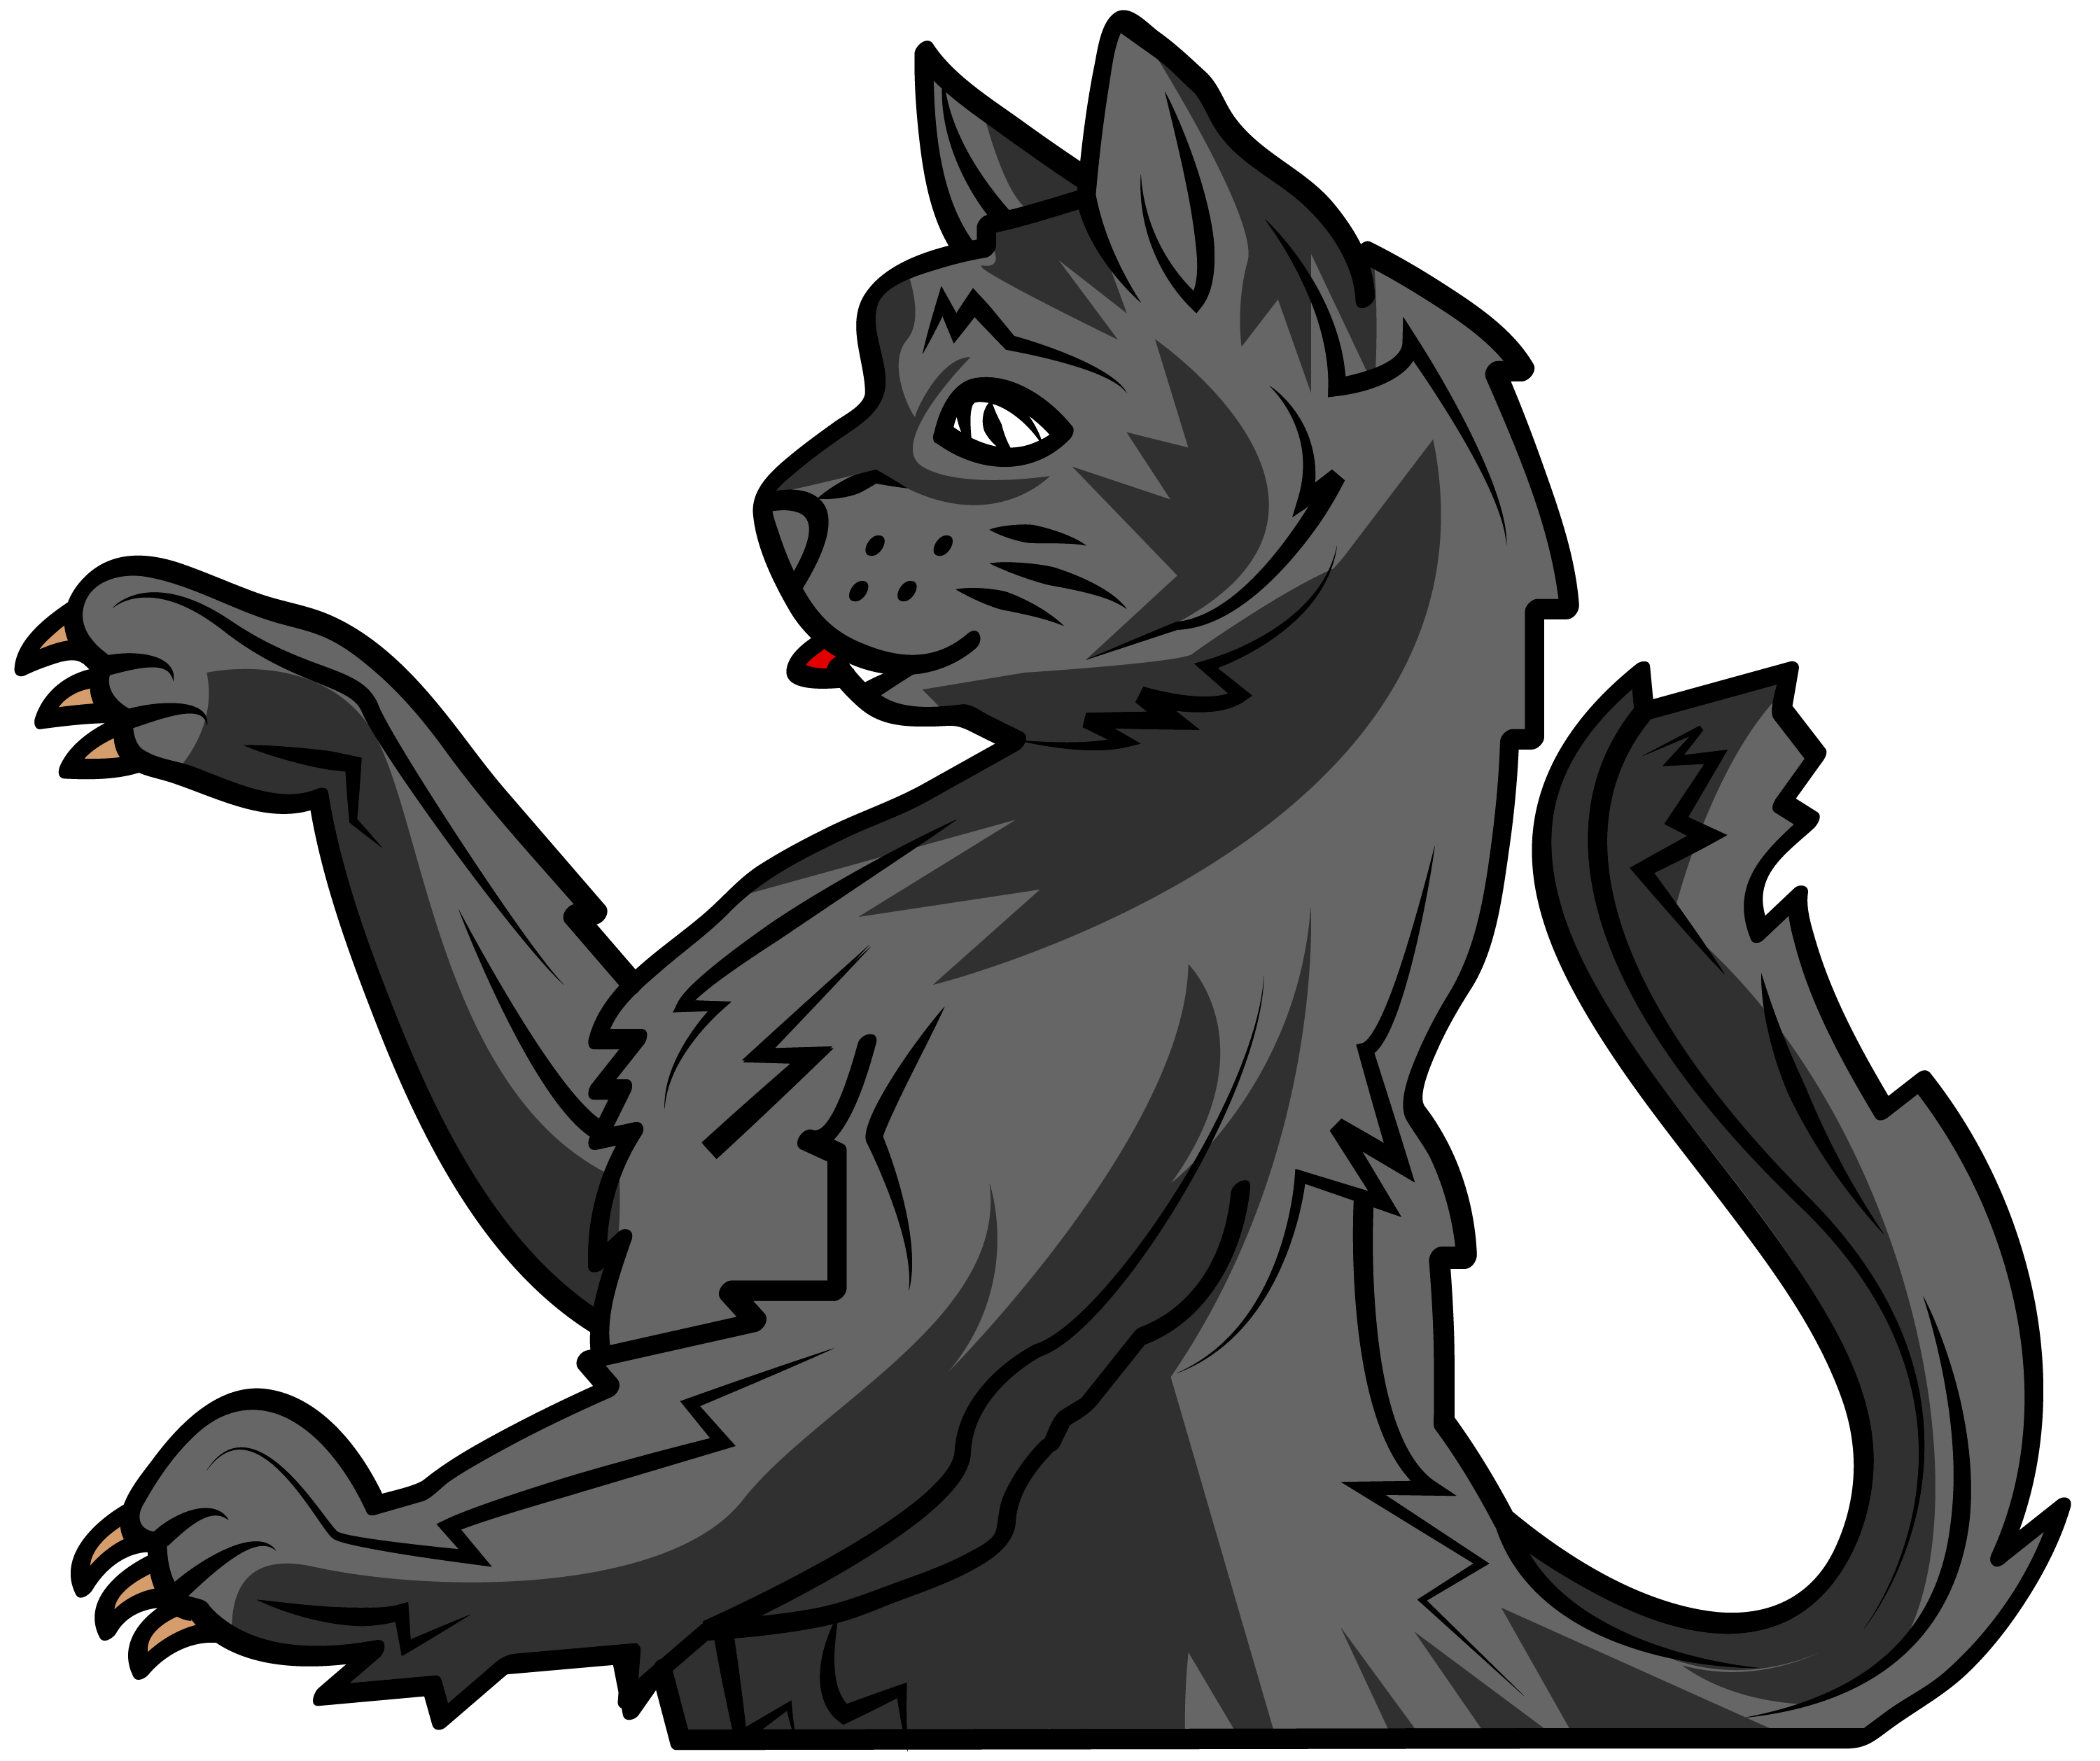 Cat arm png. Myblazon com learn about